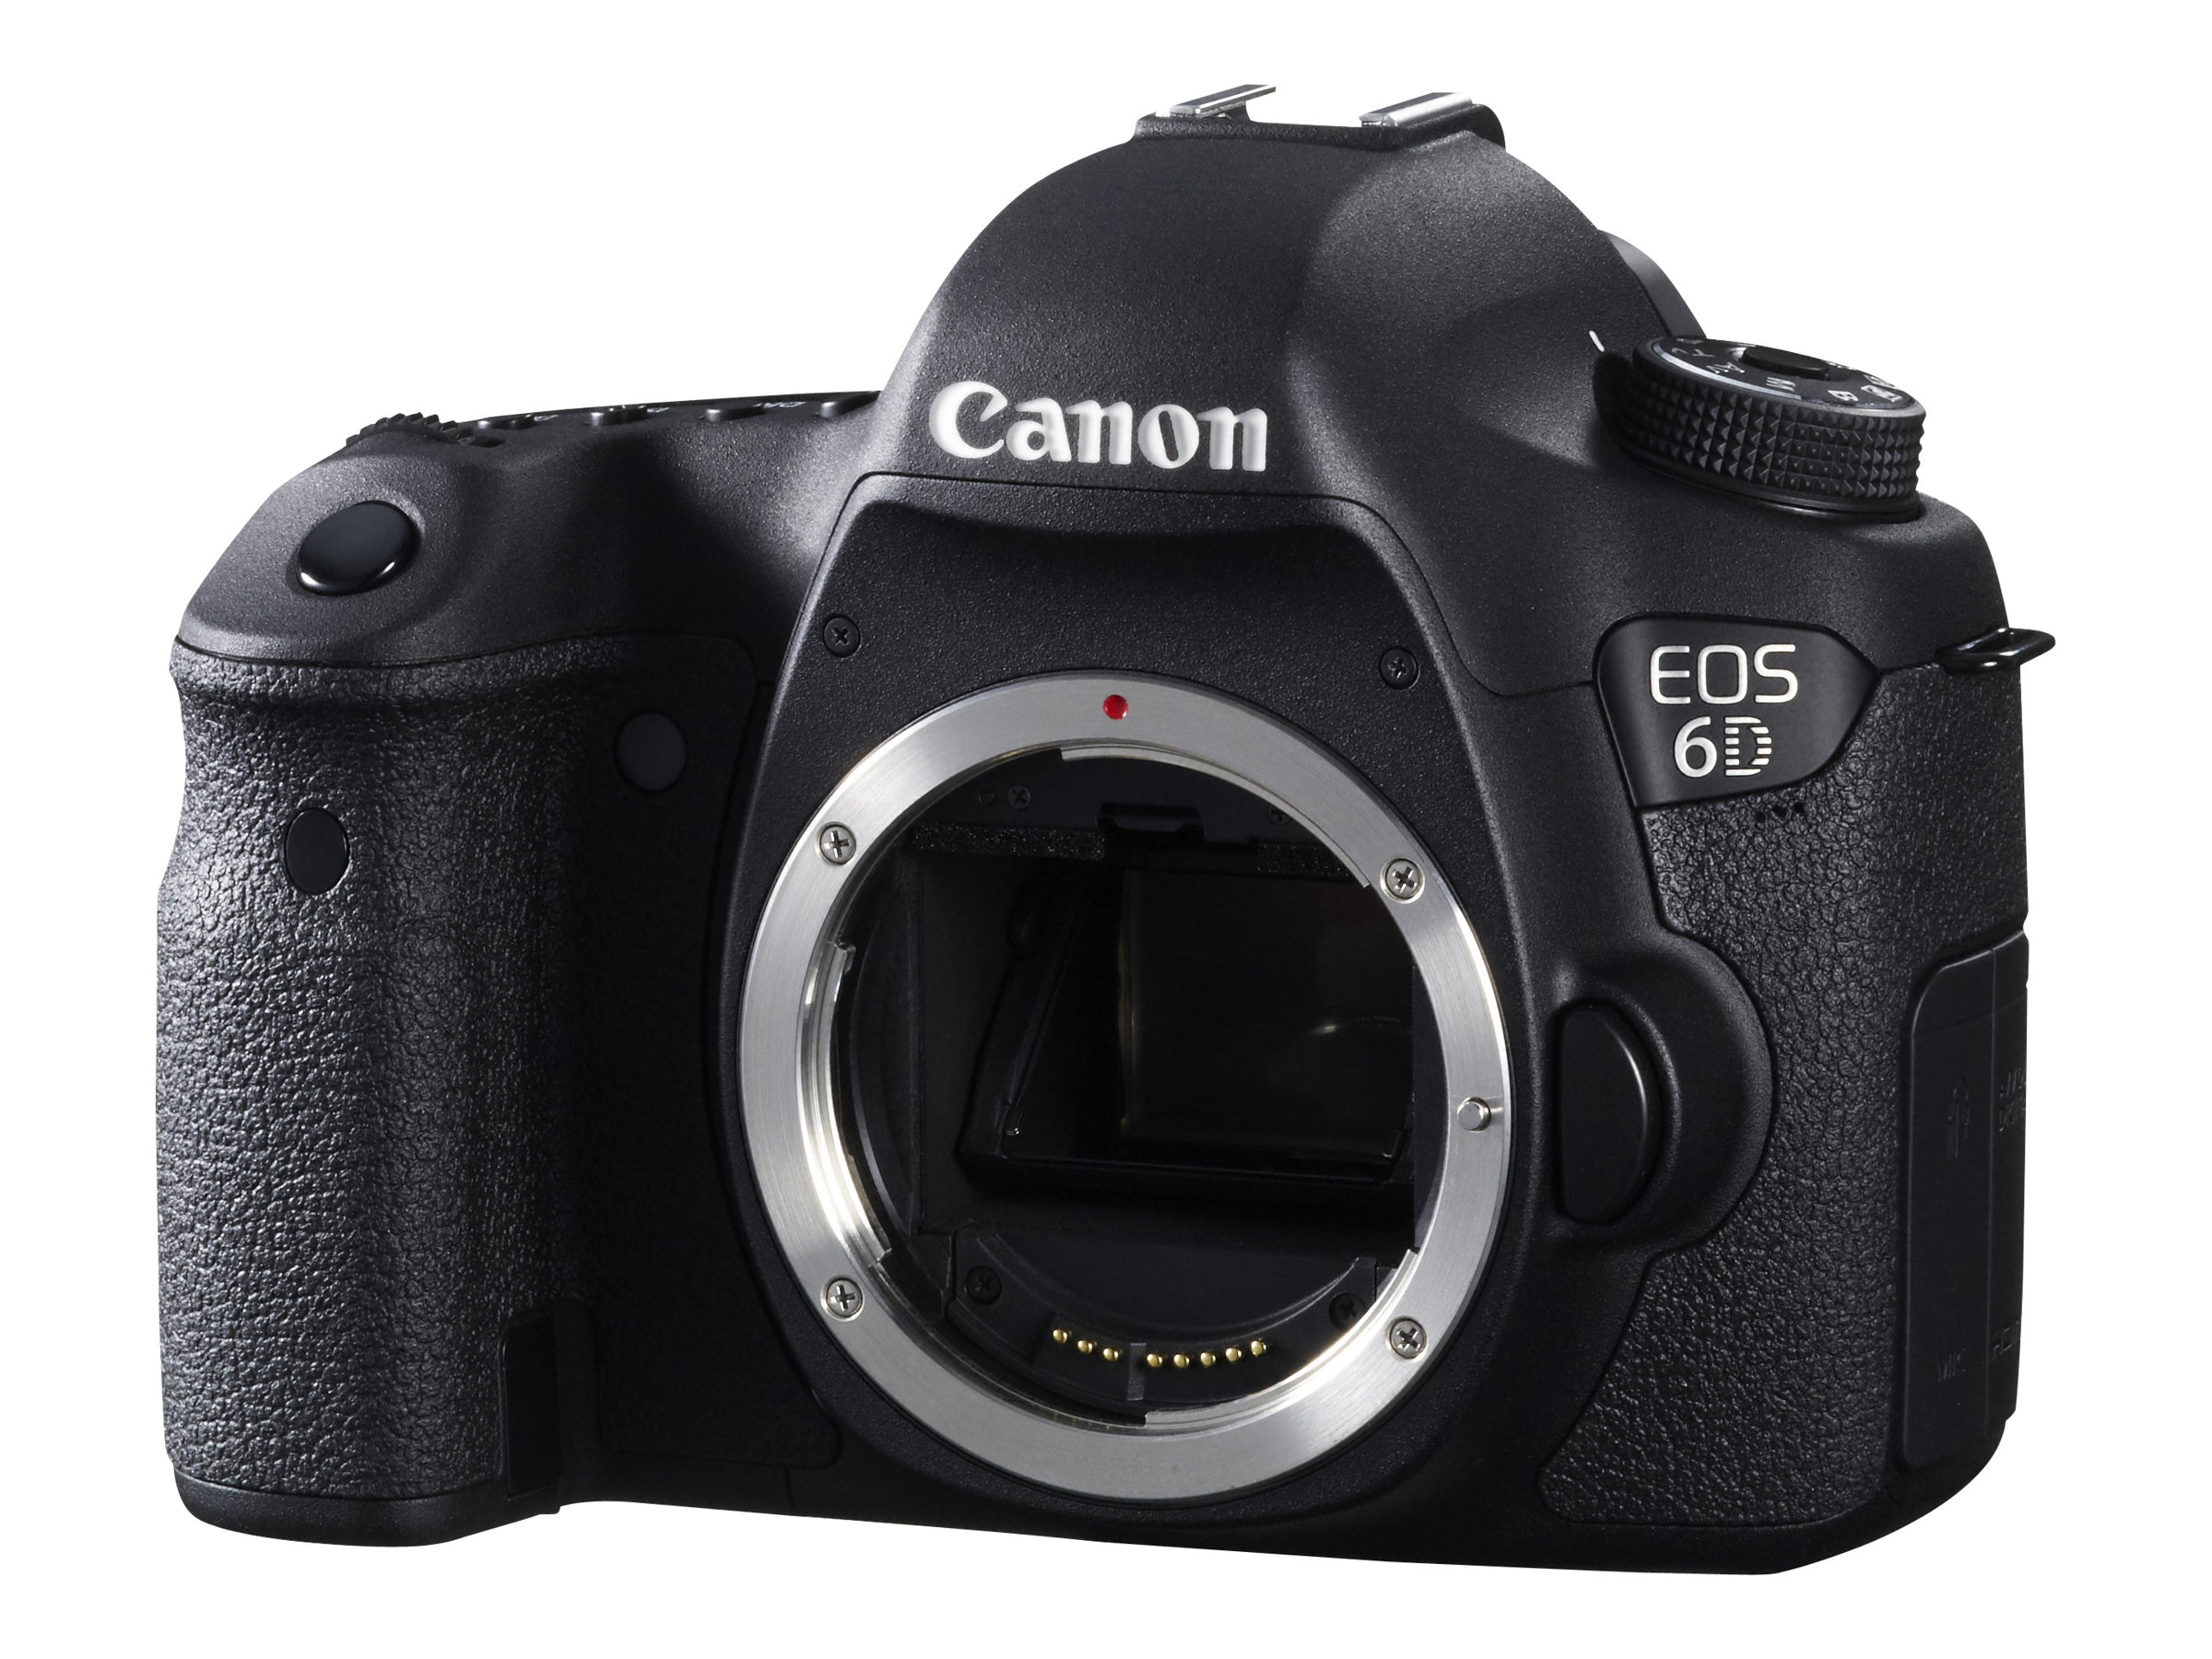 Canon EOS 6D DSLR Camera with 24-105mm f 3.5-5.6 STM Lens